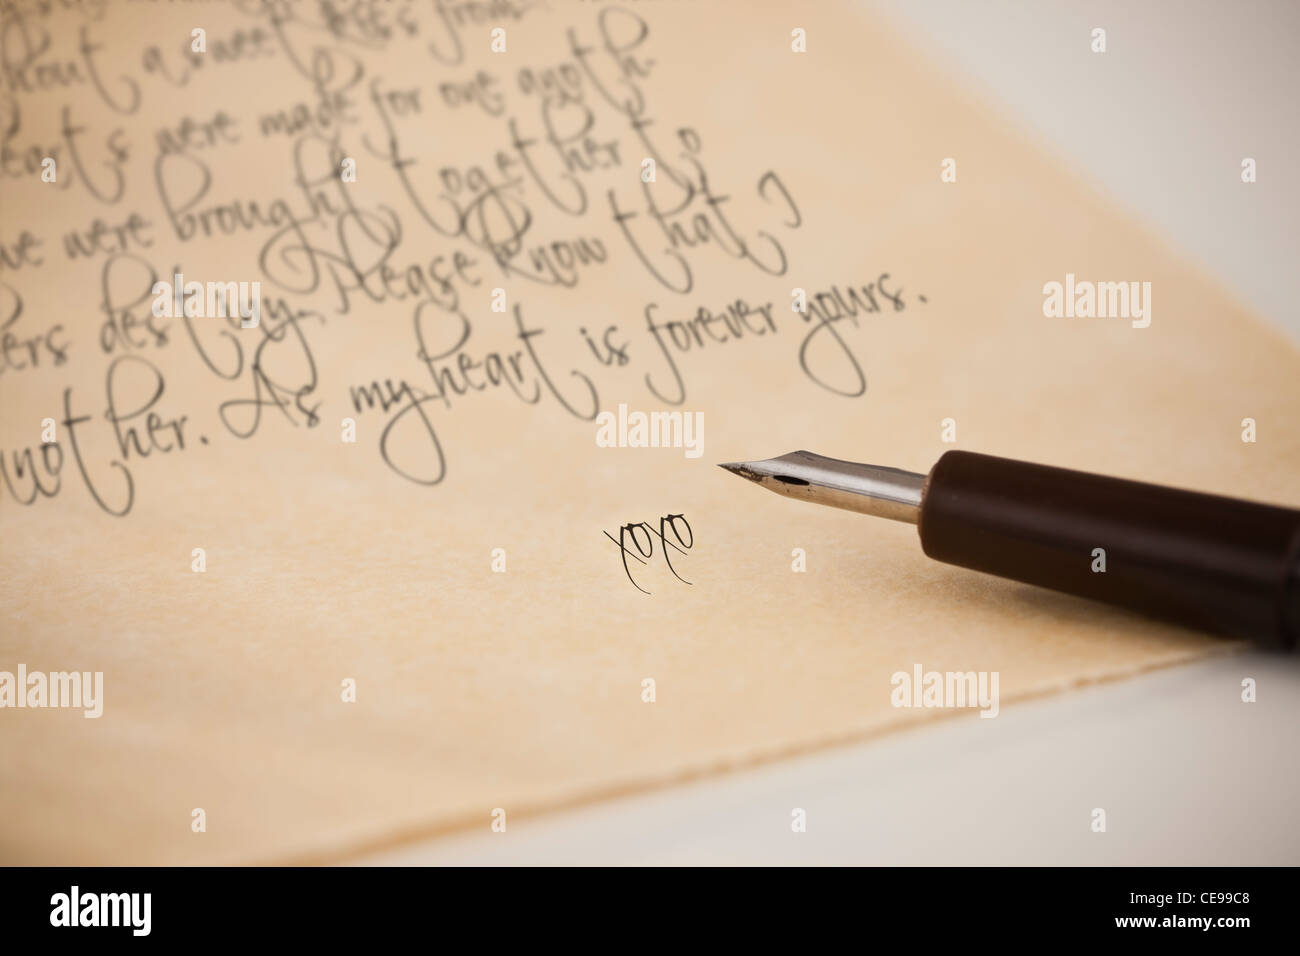 Close-up of love letter and fountain pen - Stock Image